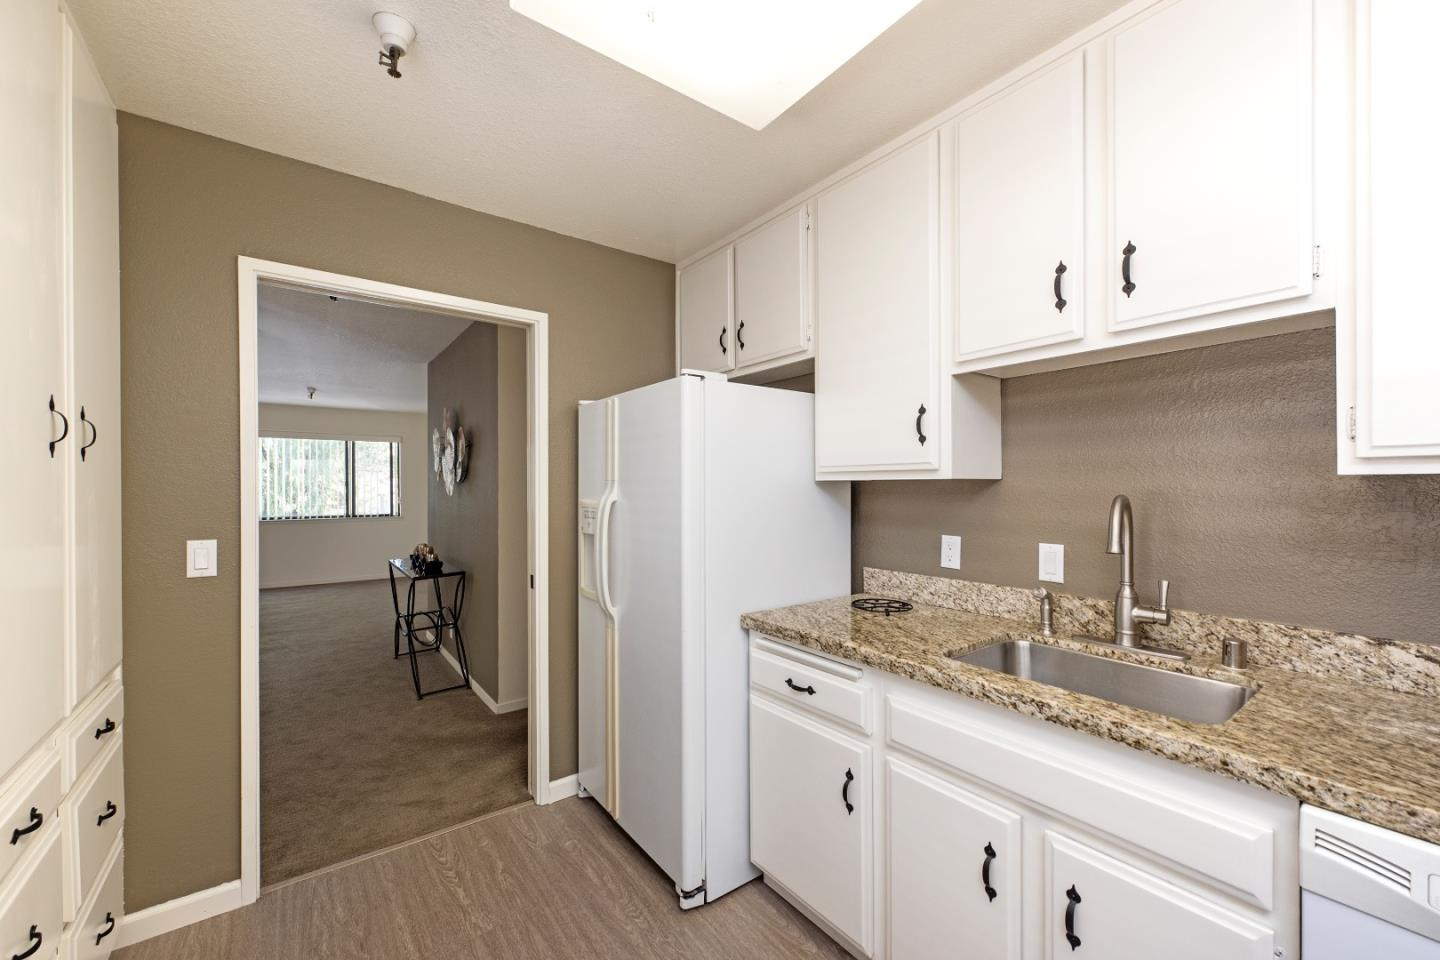 449 Alberto Way Unit C233 Los Gatos, CA 95032 - MLS #: ML81722790